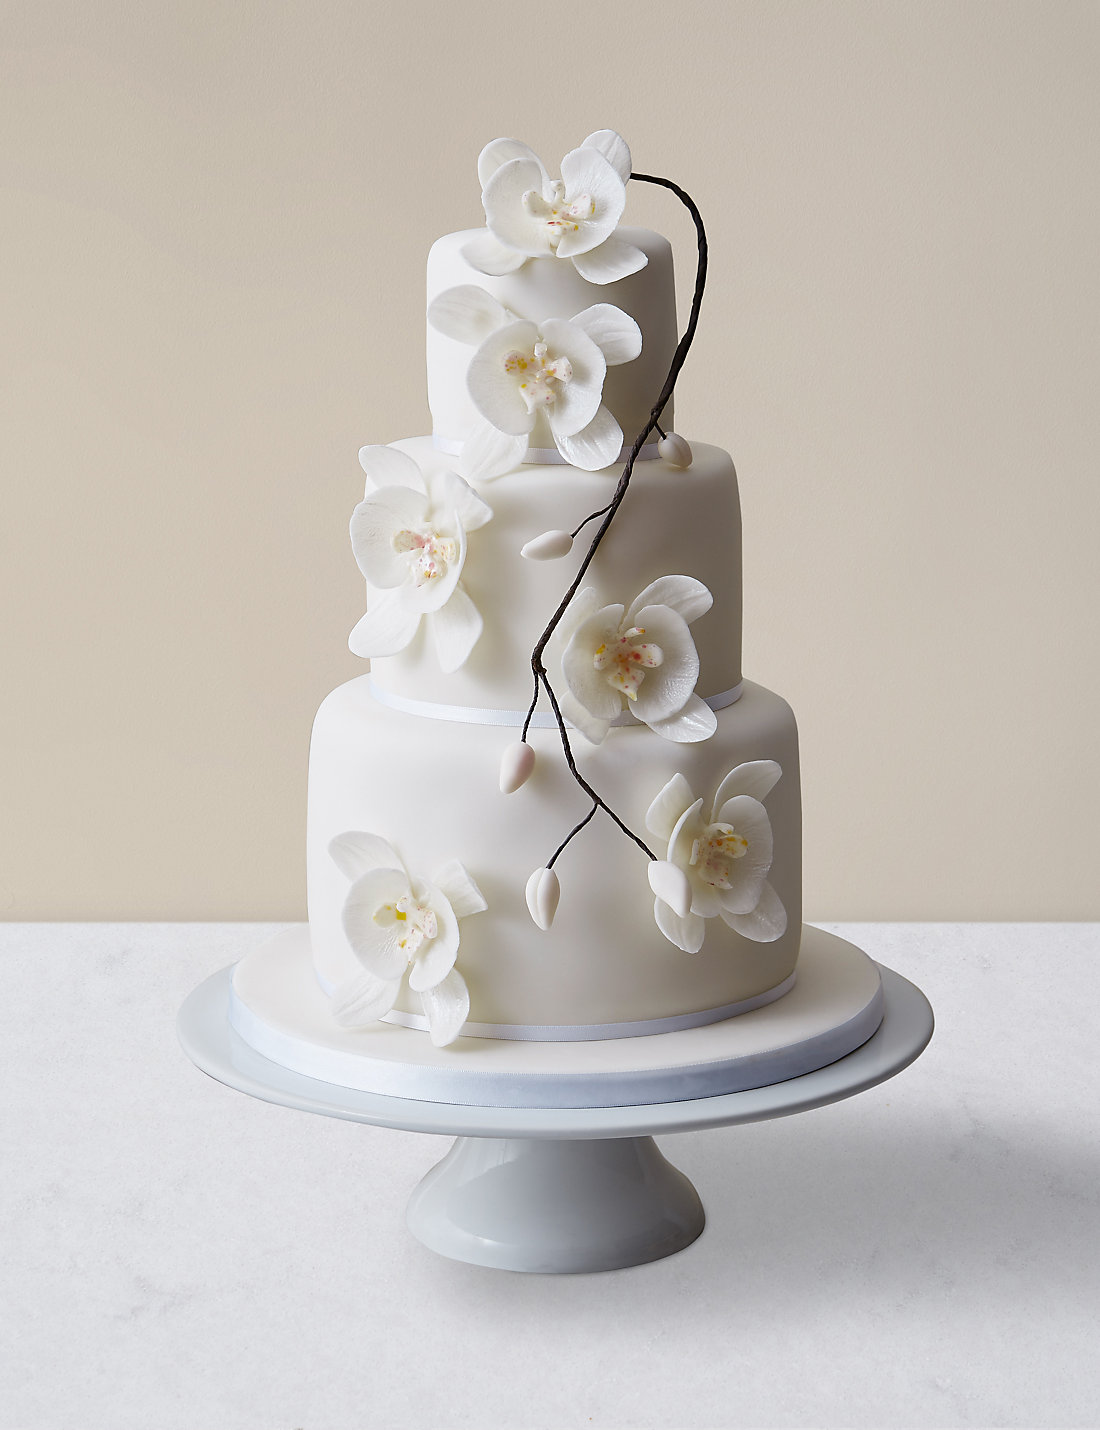 Marks Spencer Wedding Cakes Uk - 5000+ Simple Wedding Cakes